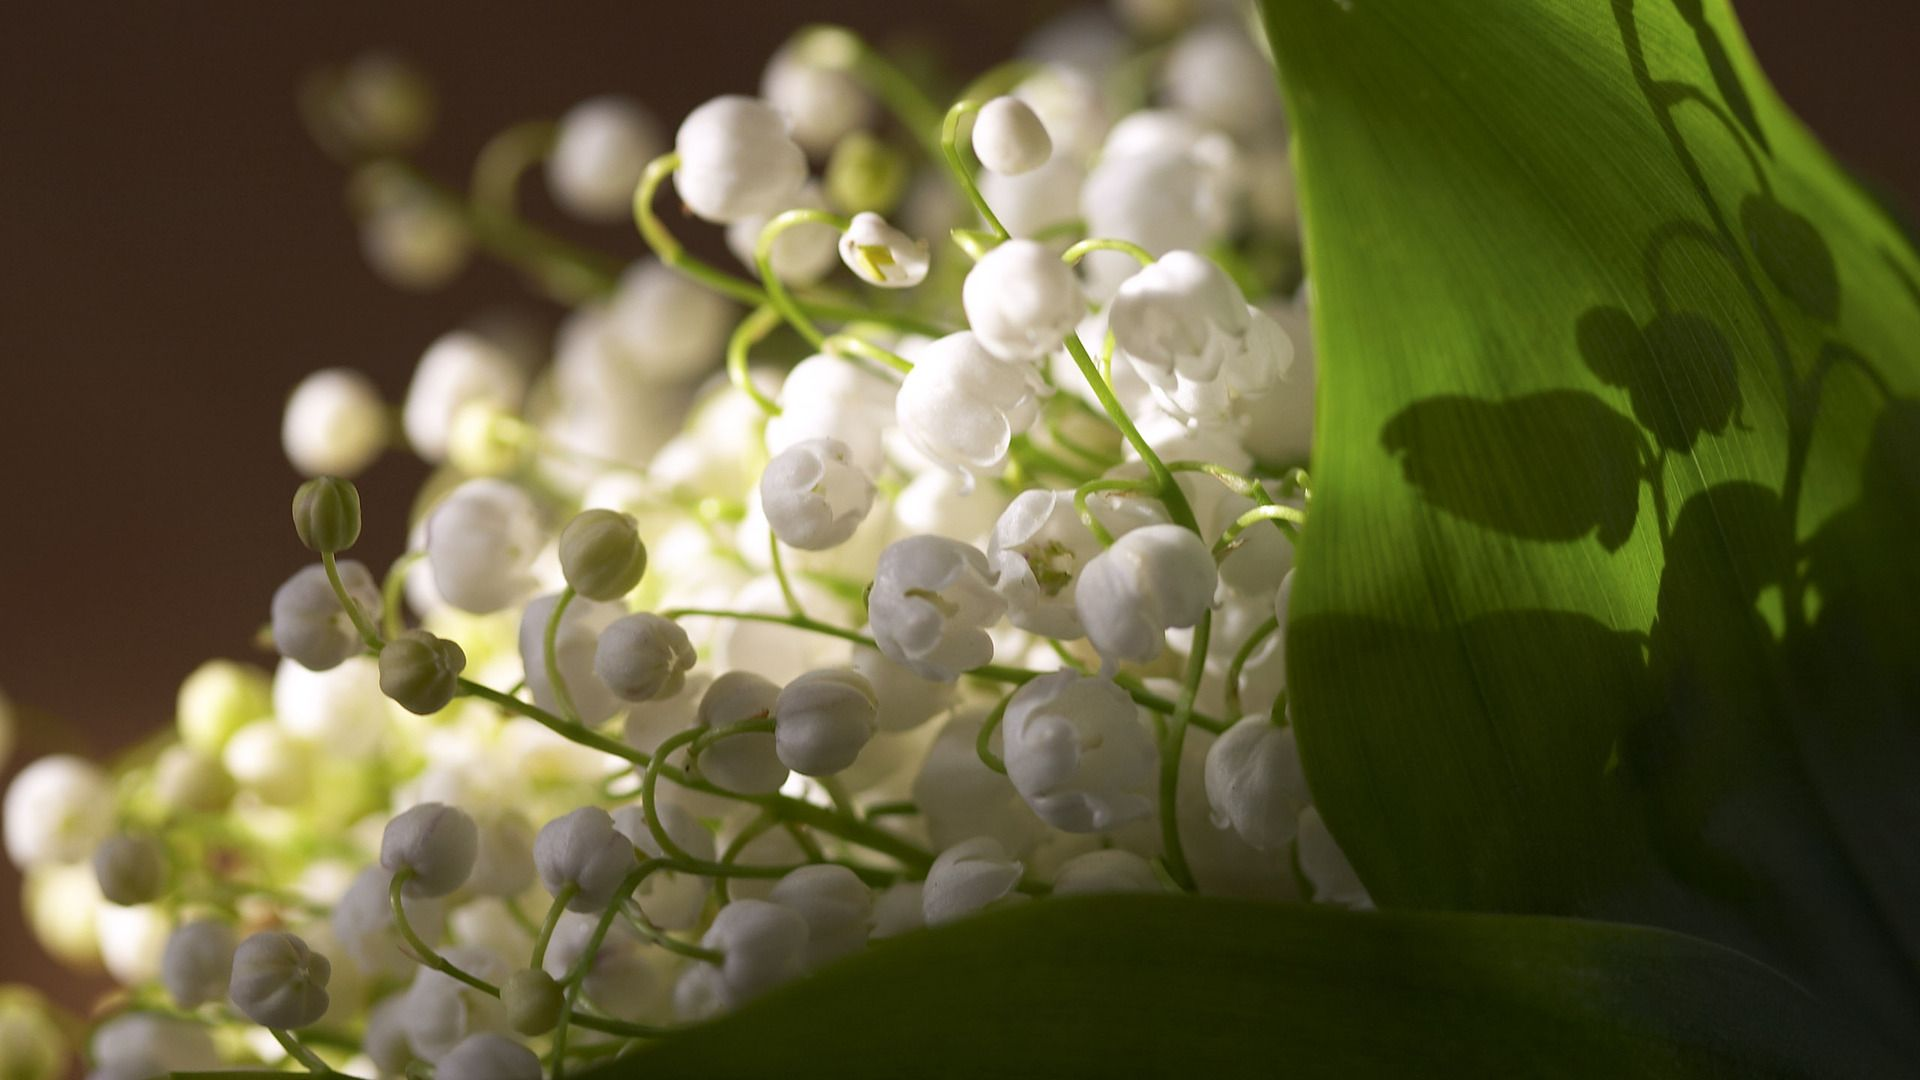 Lily Of The Valley full wallpaper